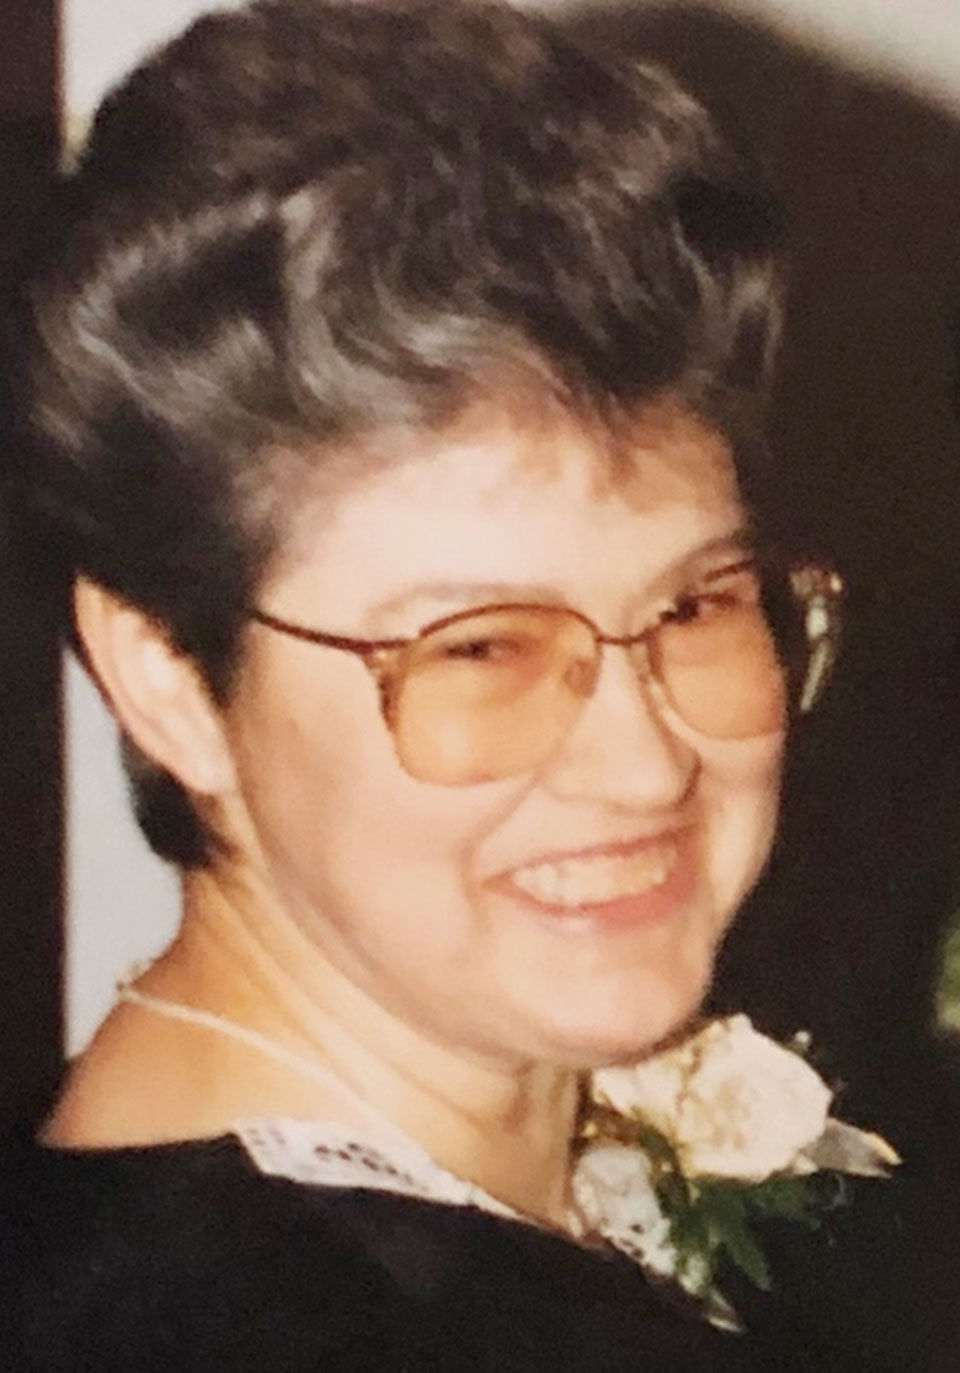 Swanville woman remembered for her kind heart